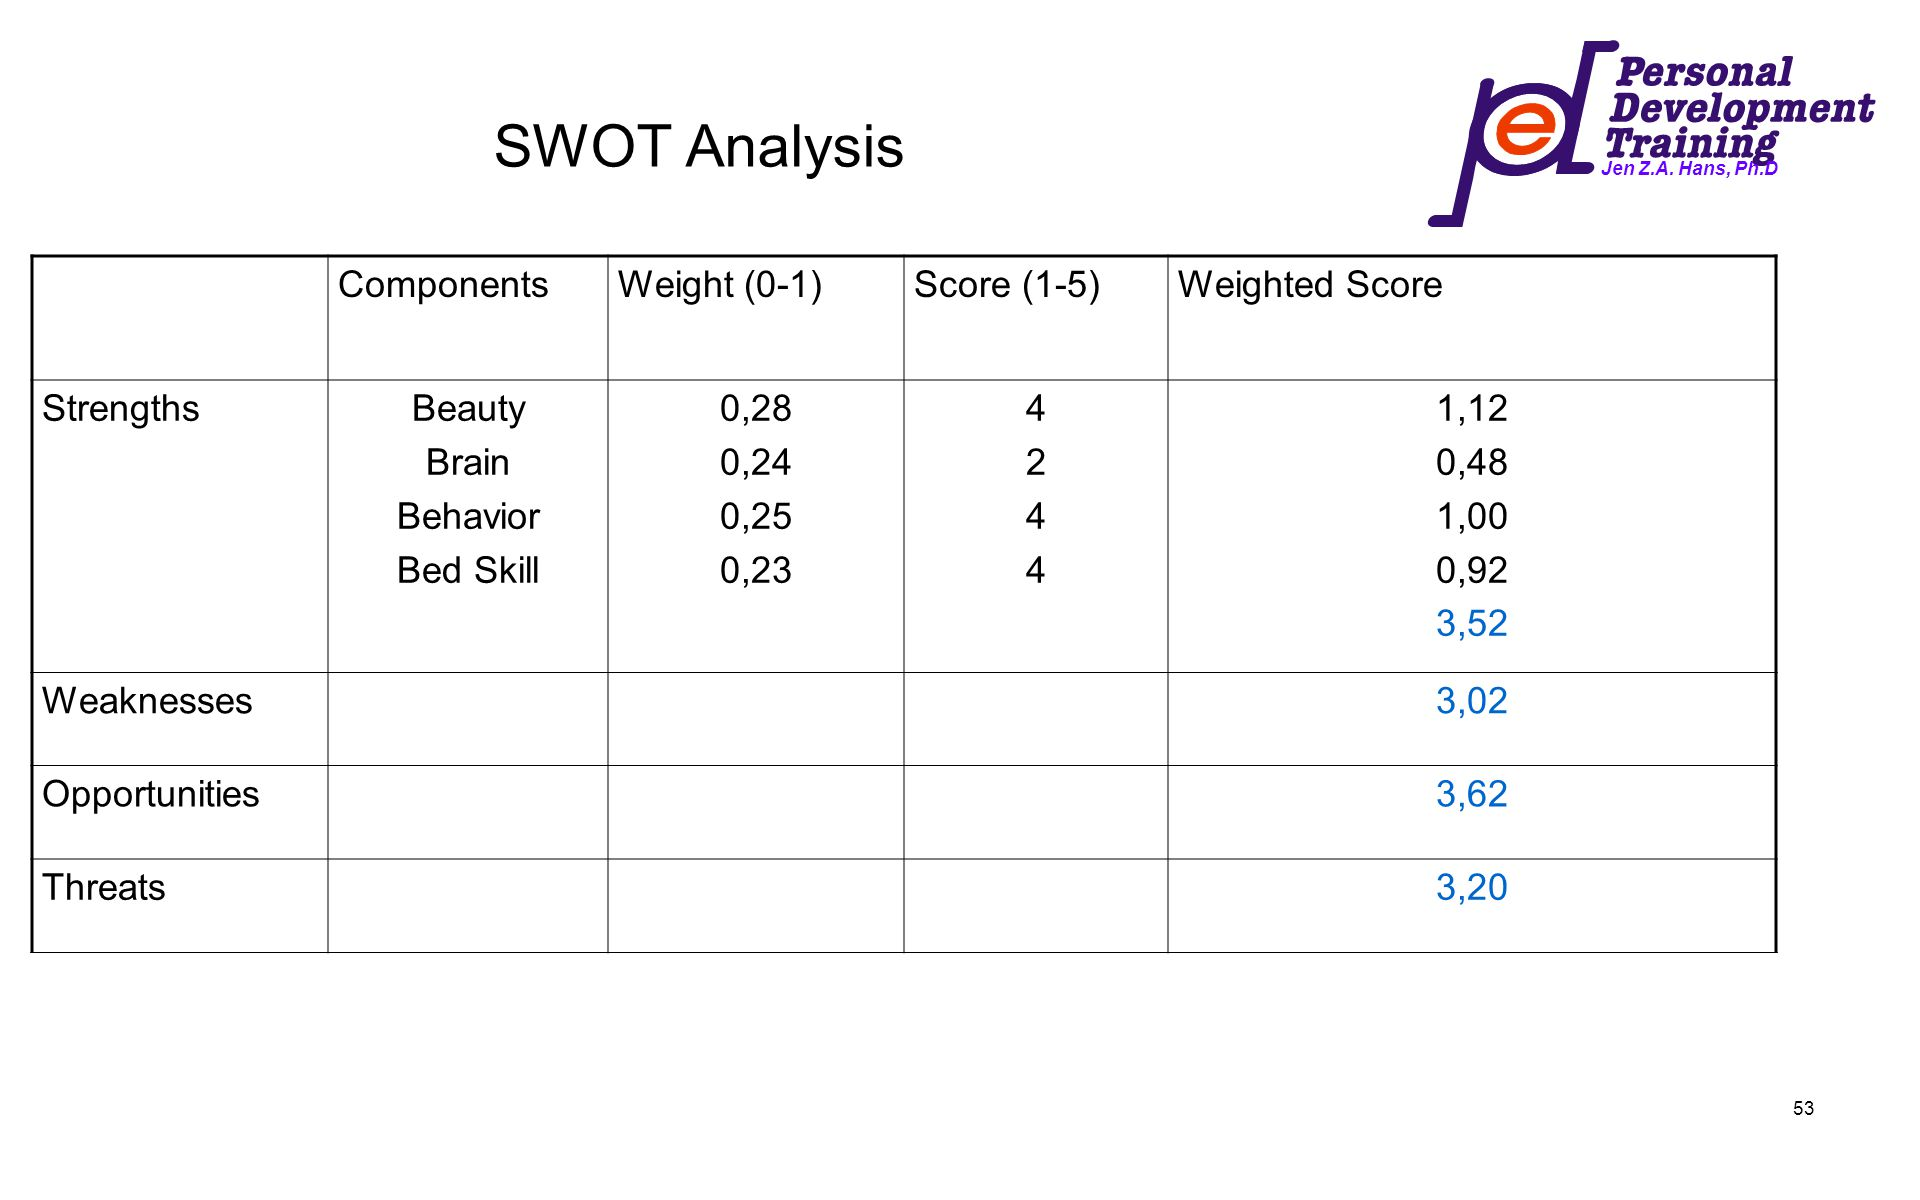 SWOT Analysis Components Weight (0-1) Score (1-5) Weighted Score